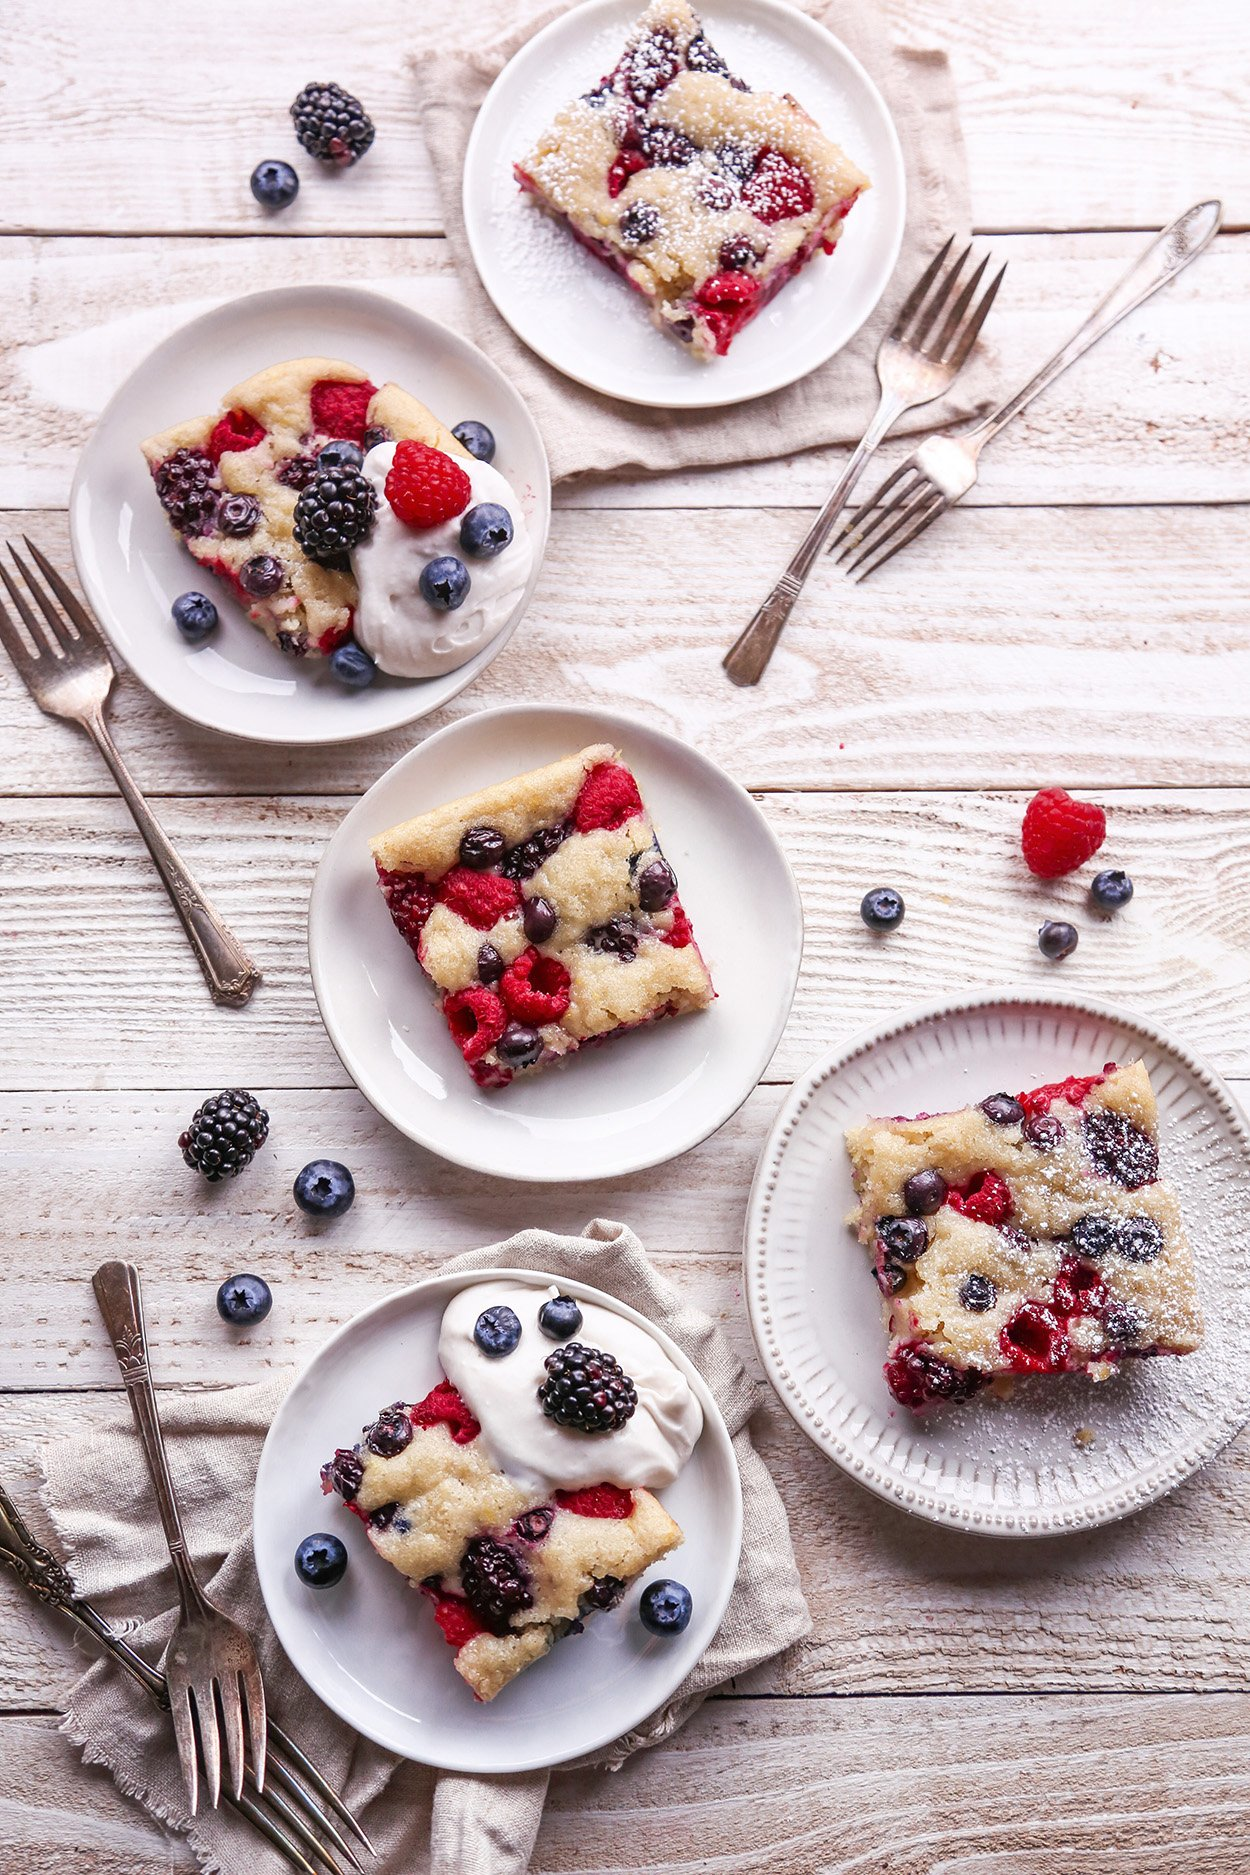 Easy Berry Sheet Cake | Free of gluten, dairy, eggs, and refined sugar, plus vegan friendly